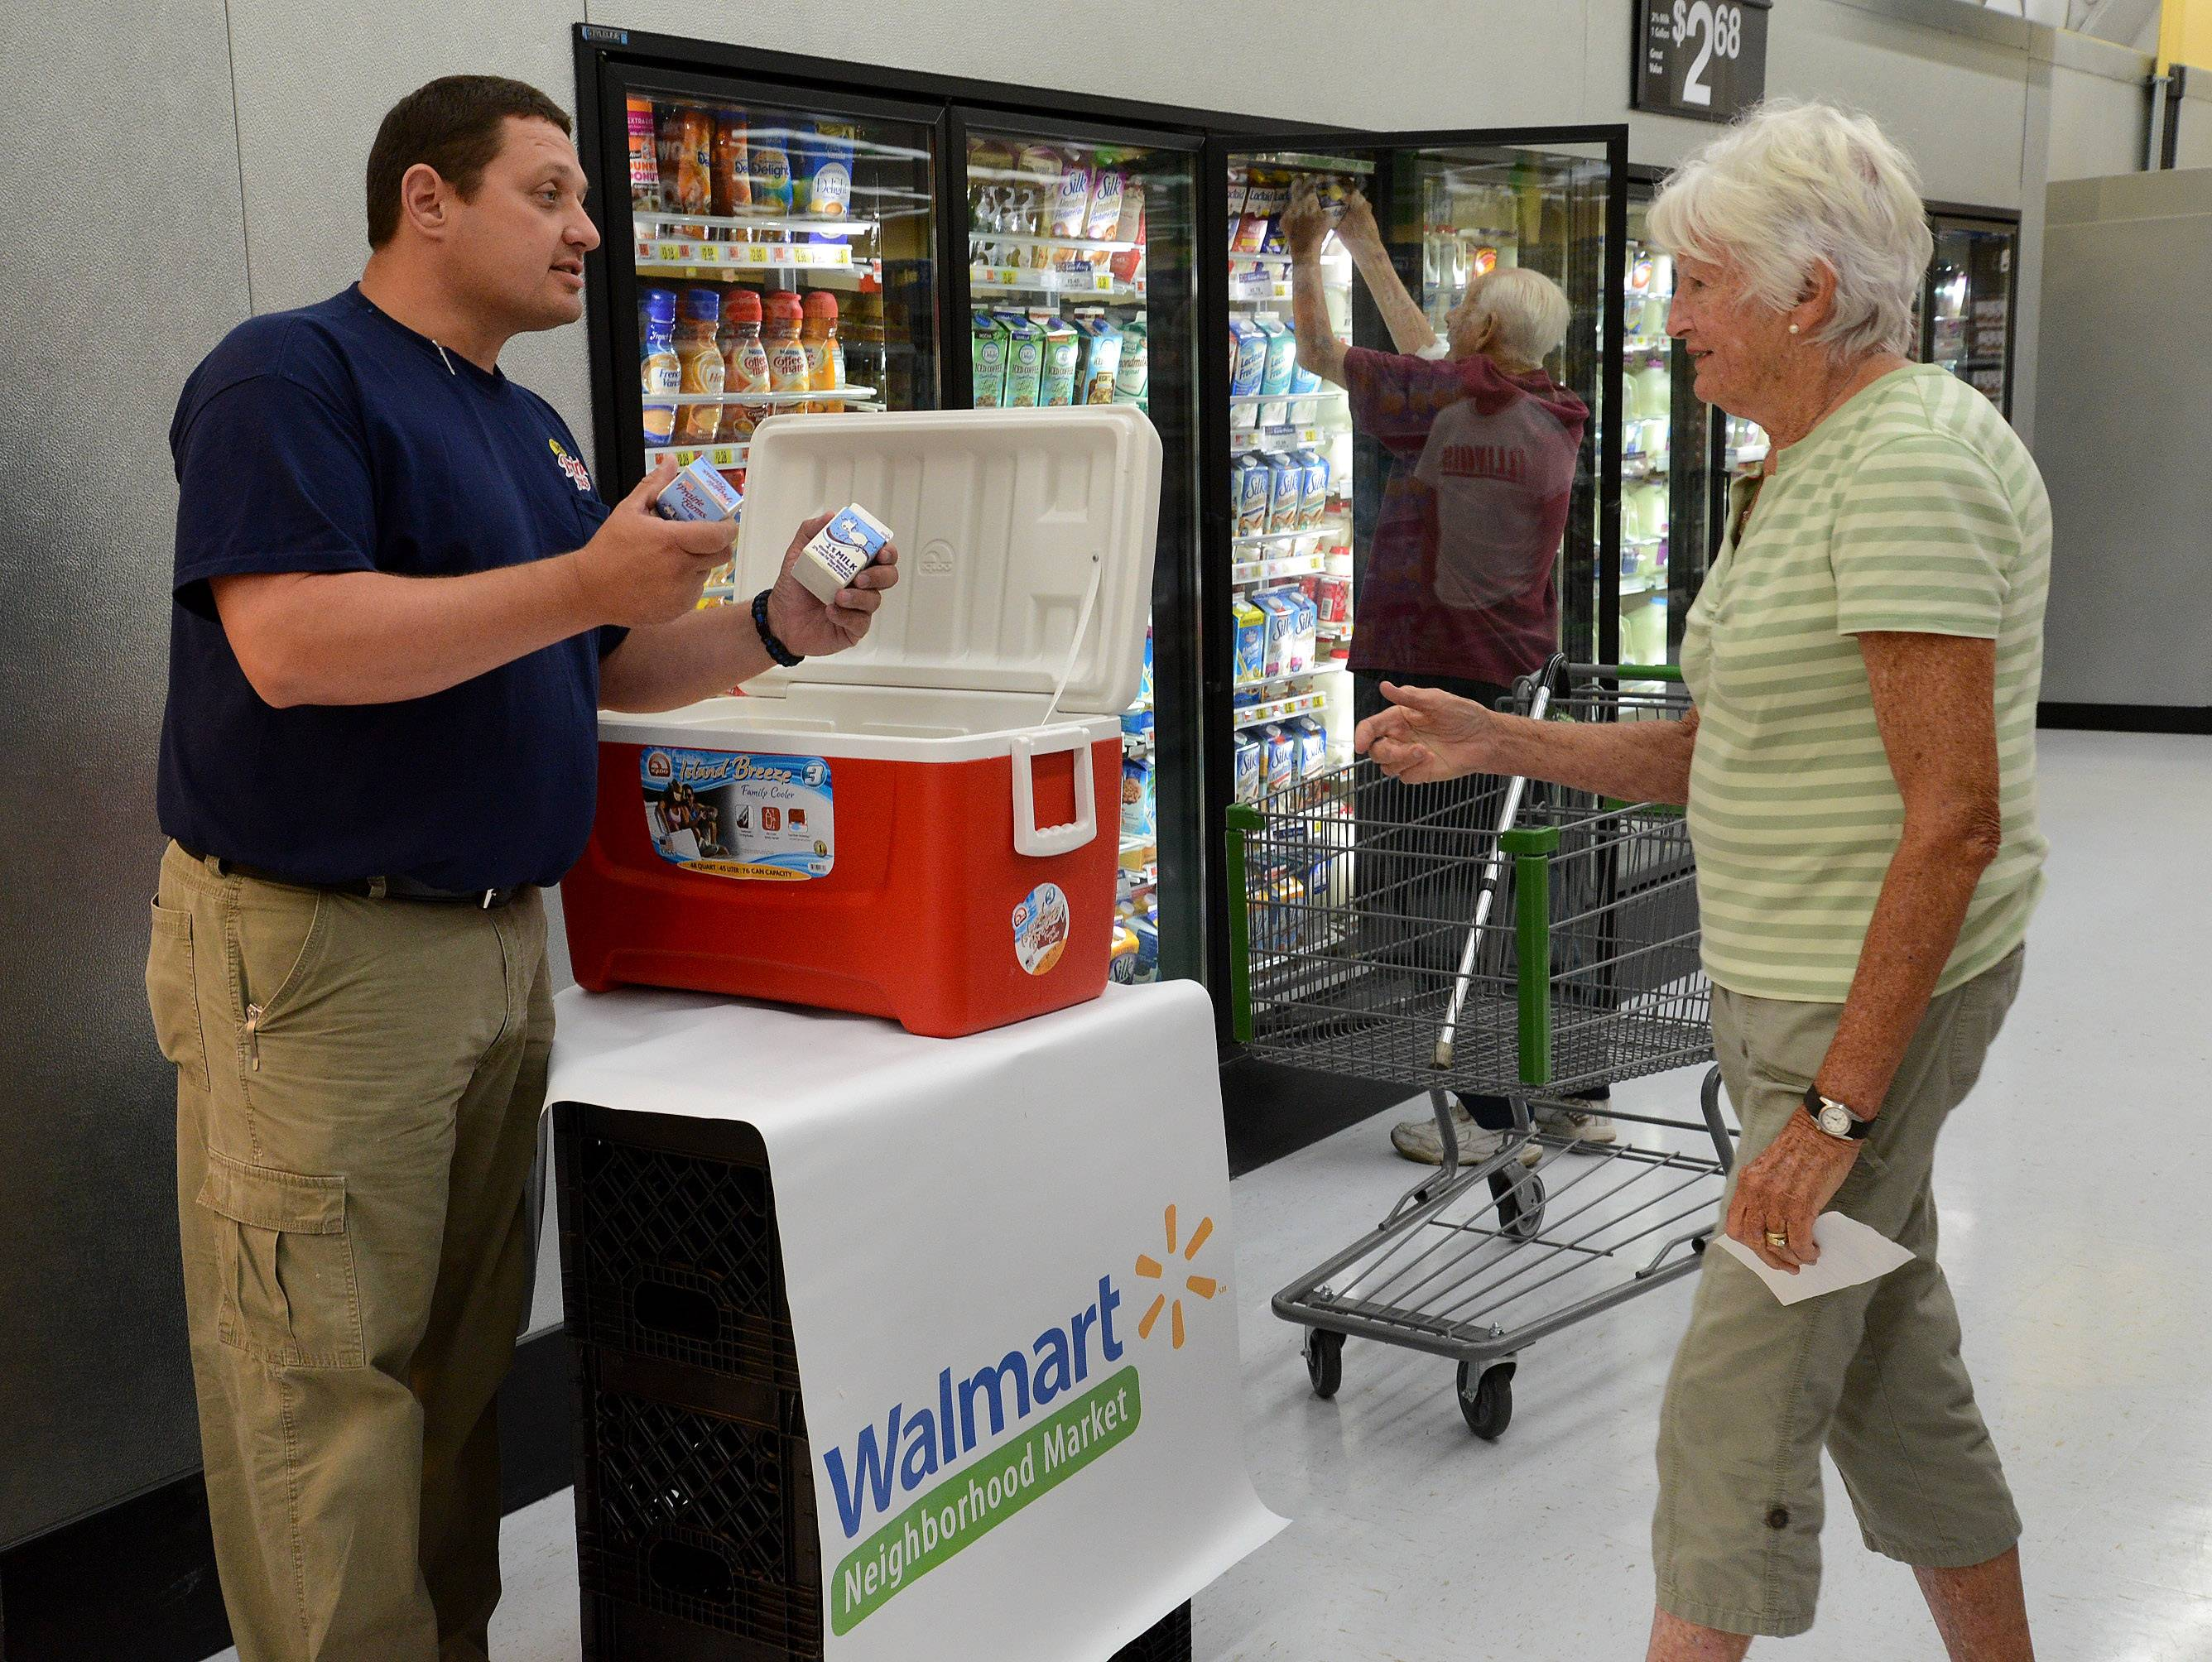 Dan Franks of Prairie Farms Dairy hands out free milk to Trish Brandenburg of Mount Prospect during the grand opening of the Walmart Neighborhood Market in Des Plaines.